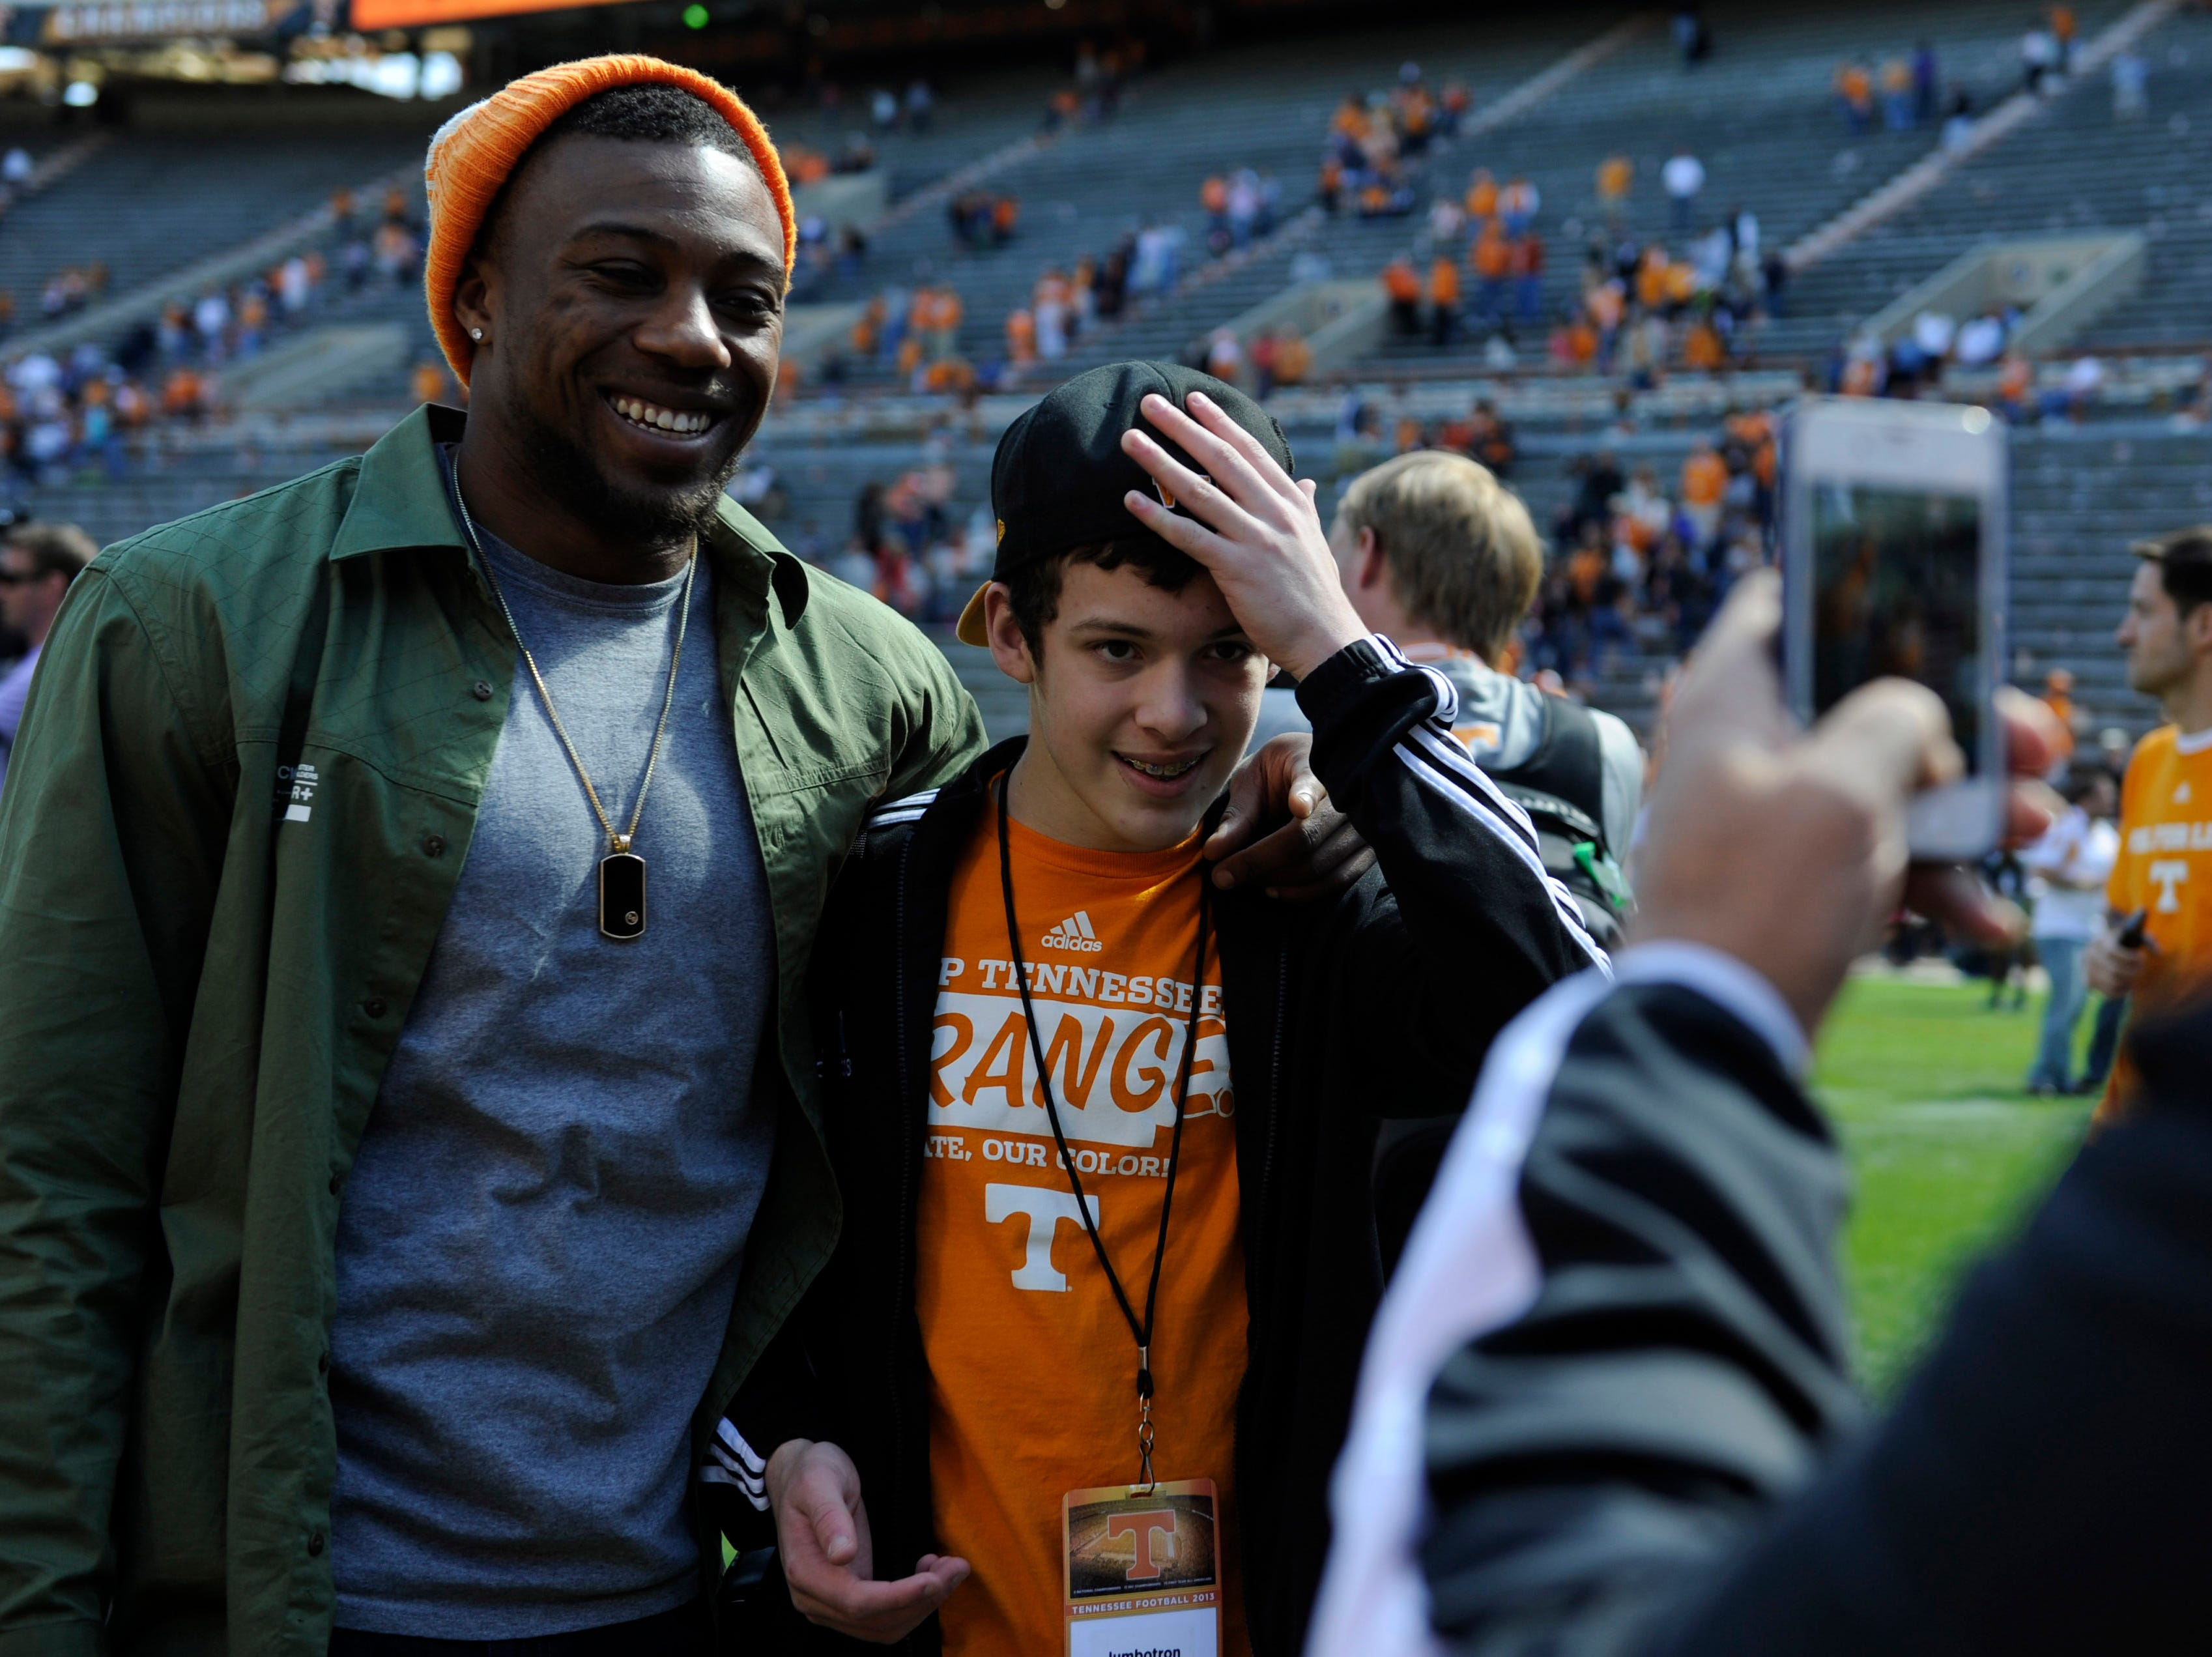 Former Volunteer Eric Berry, left, takes a photo with a fan after the Orange and White game at Neyland Stadium on Saturday, April 20, 2013.